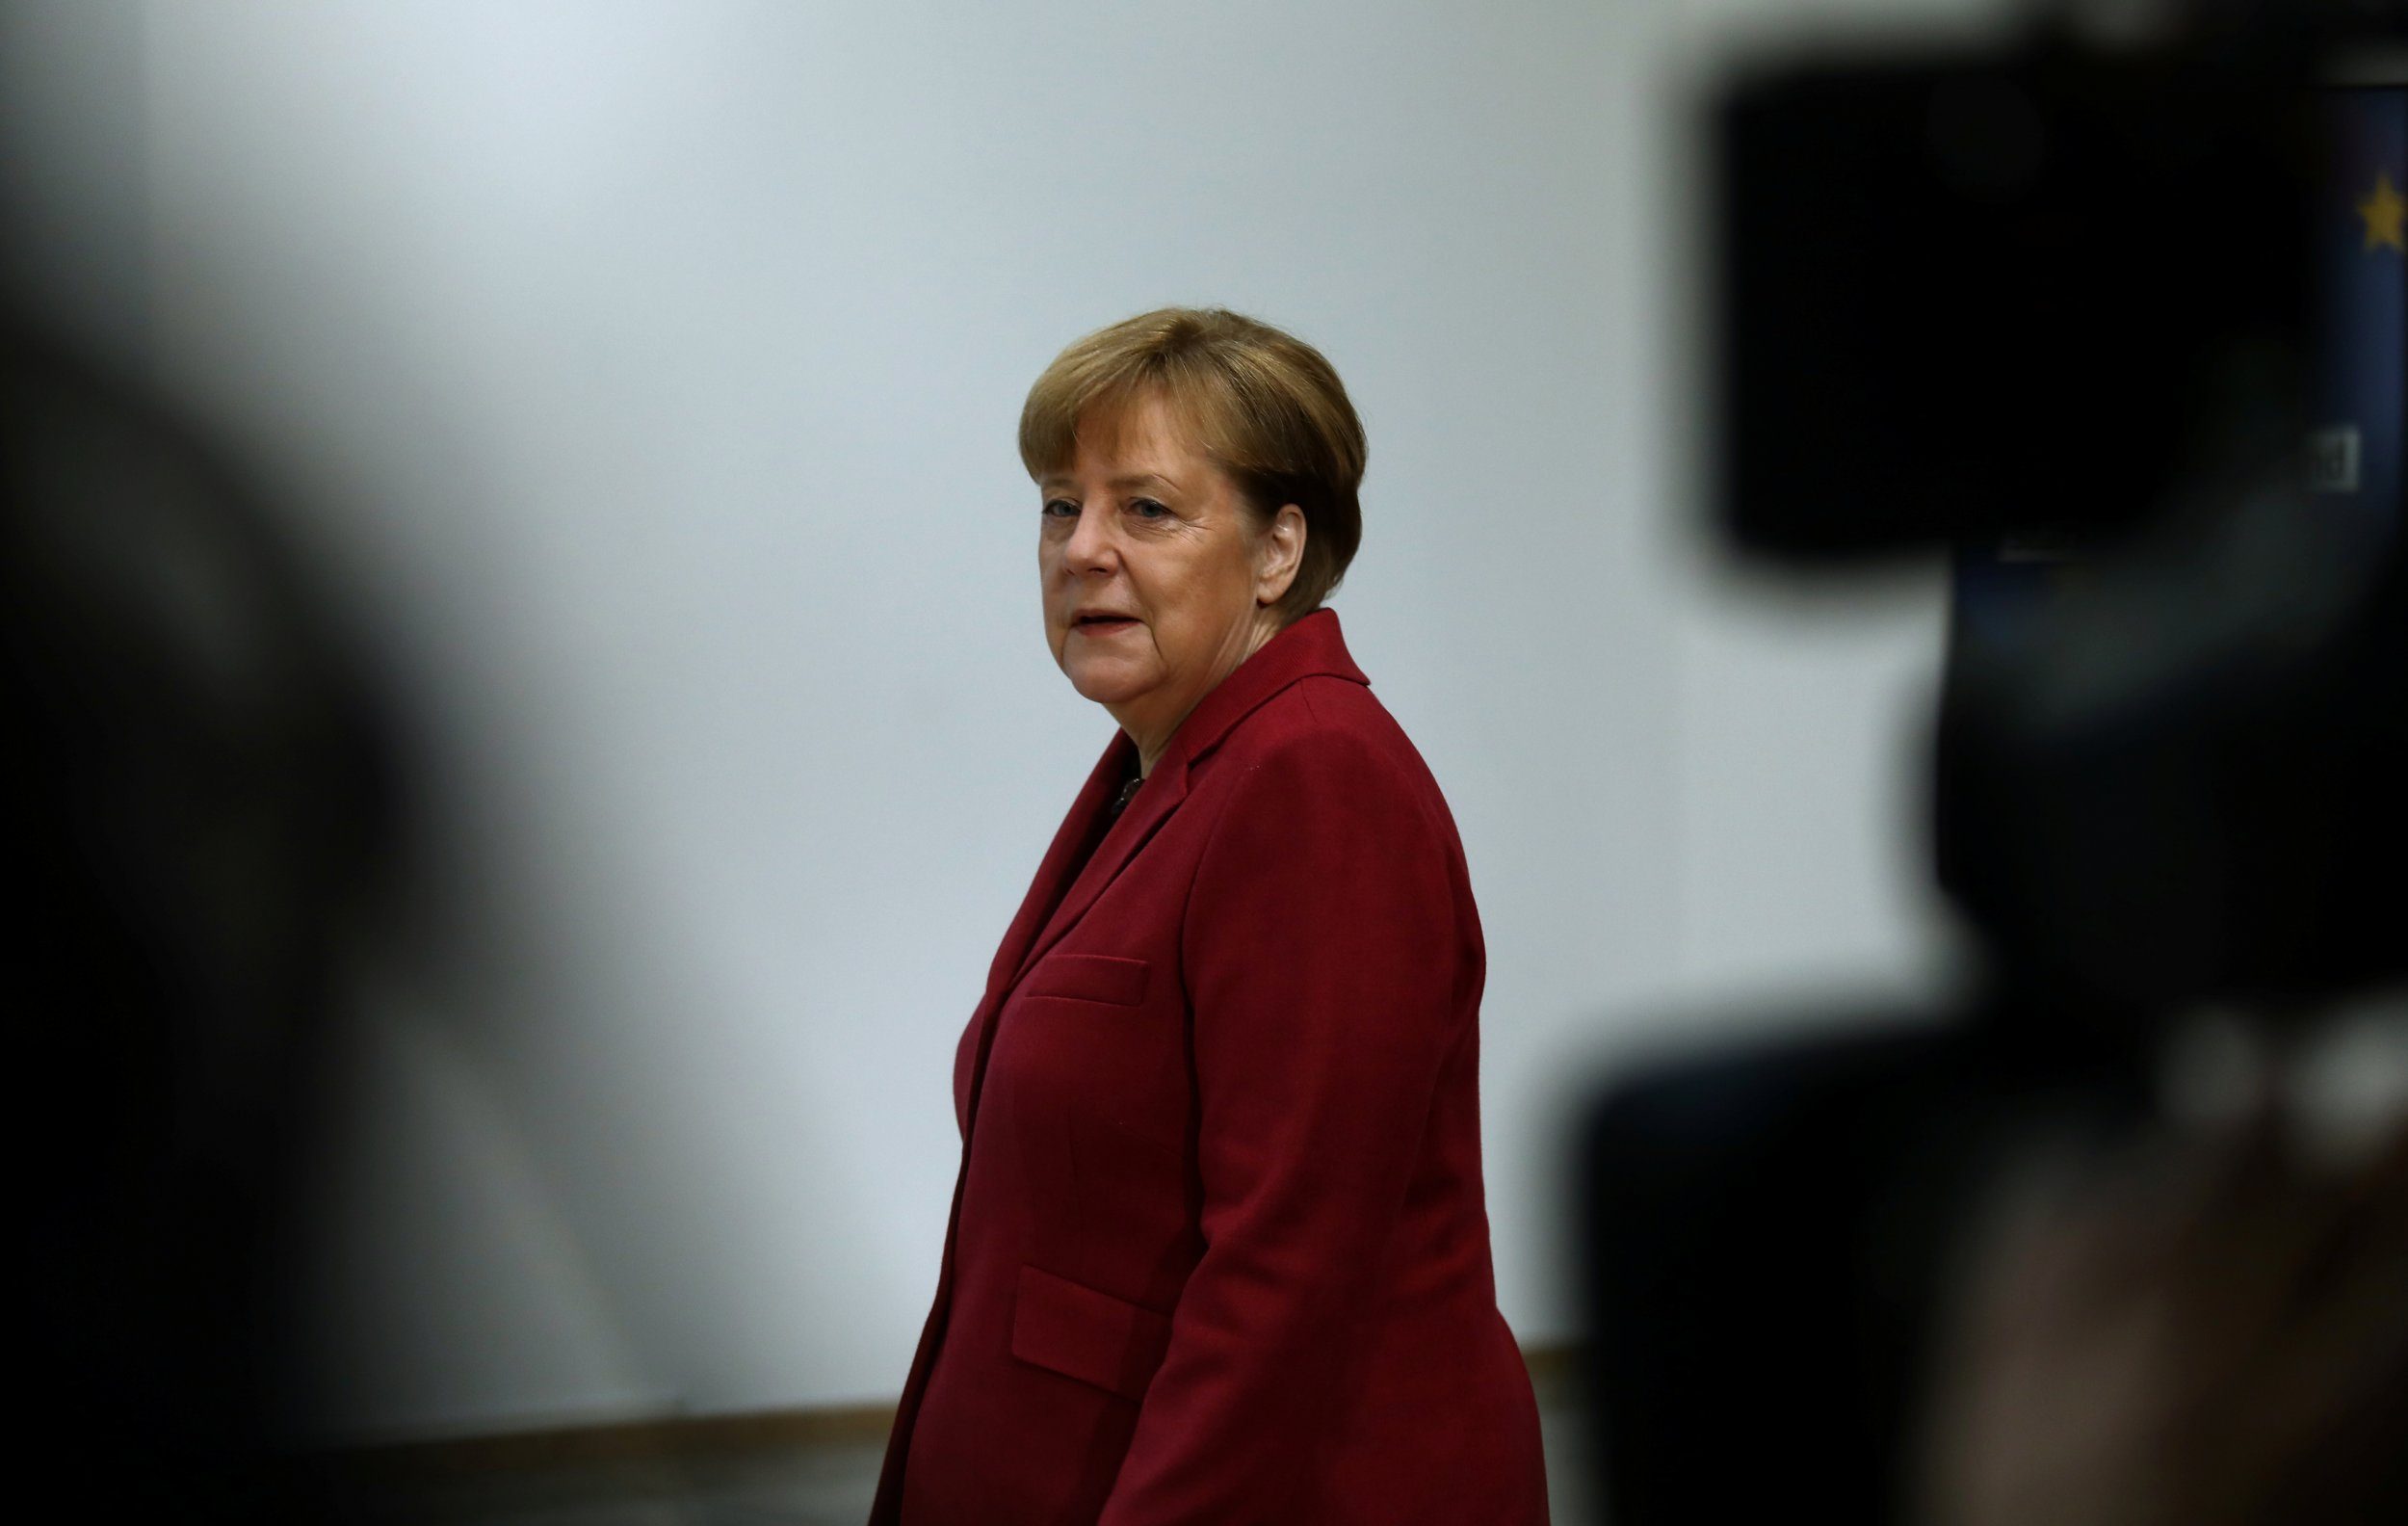 Anti-Semitism Is on the Rise, Germany's Leader Warns on ...